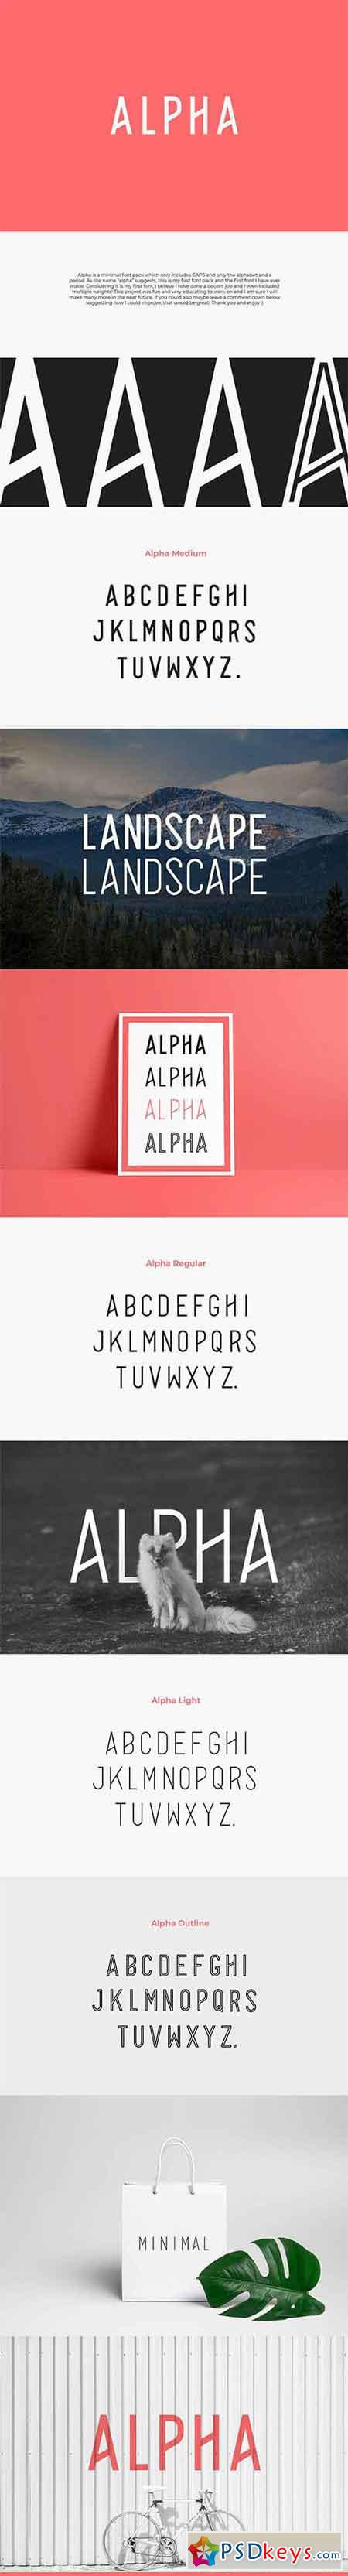 Alpha Font Family